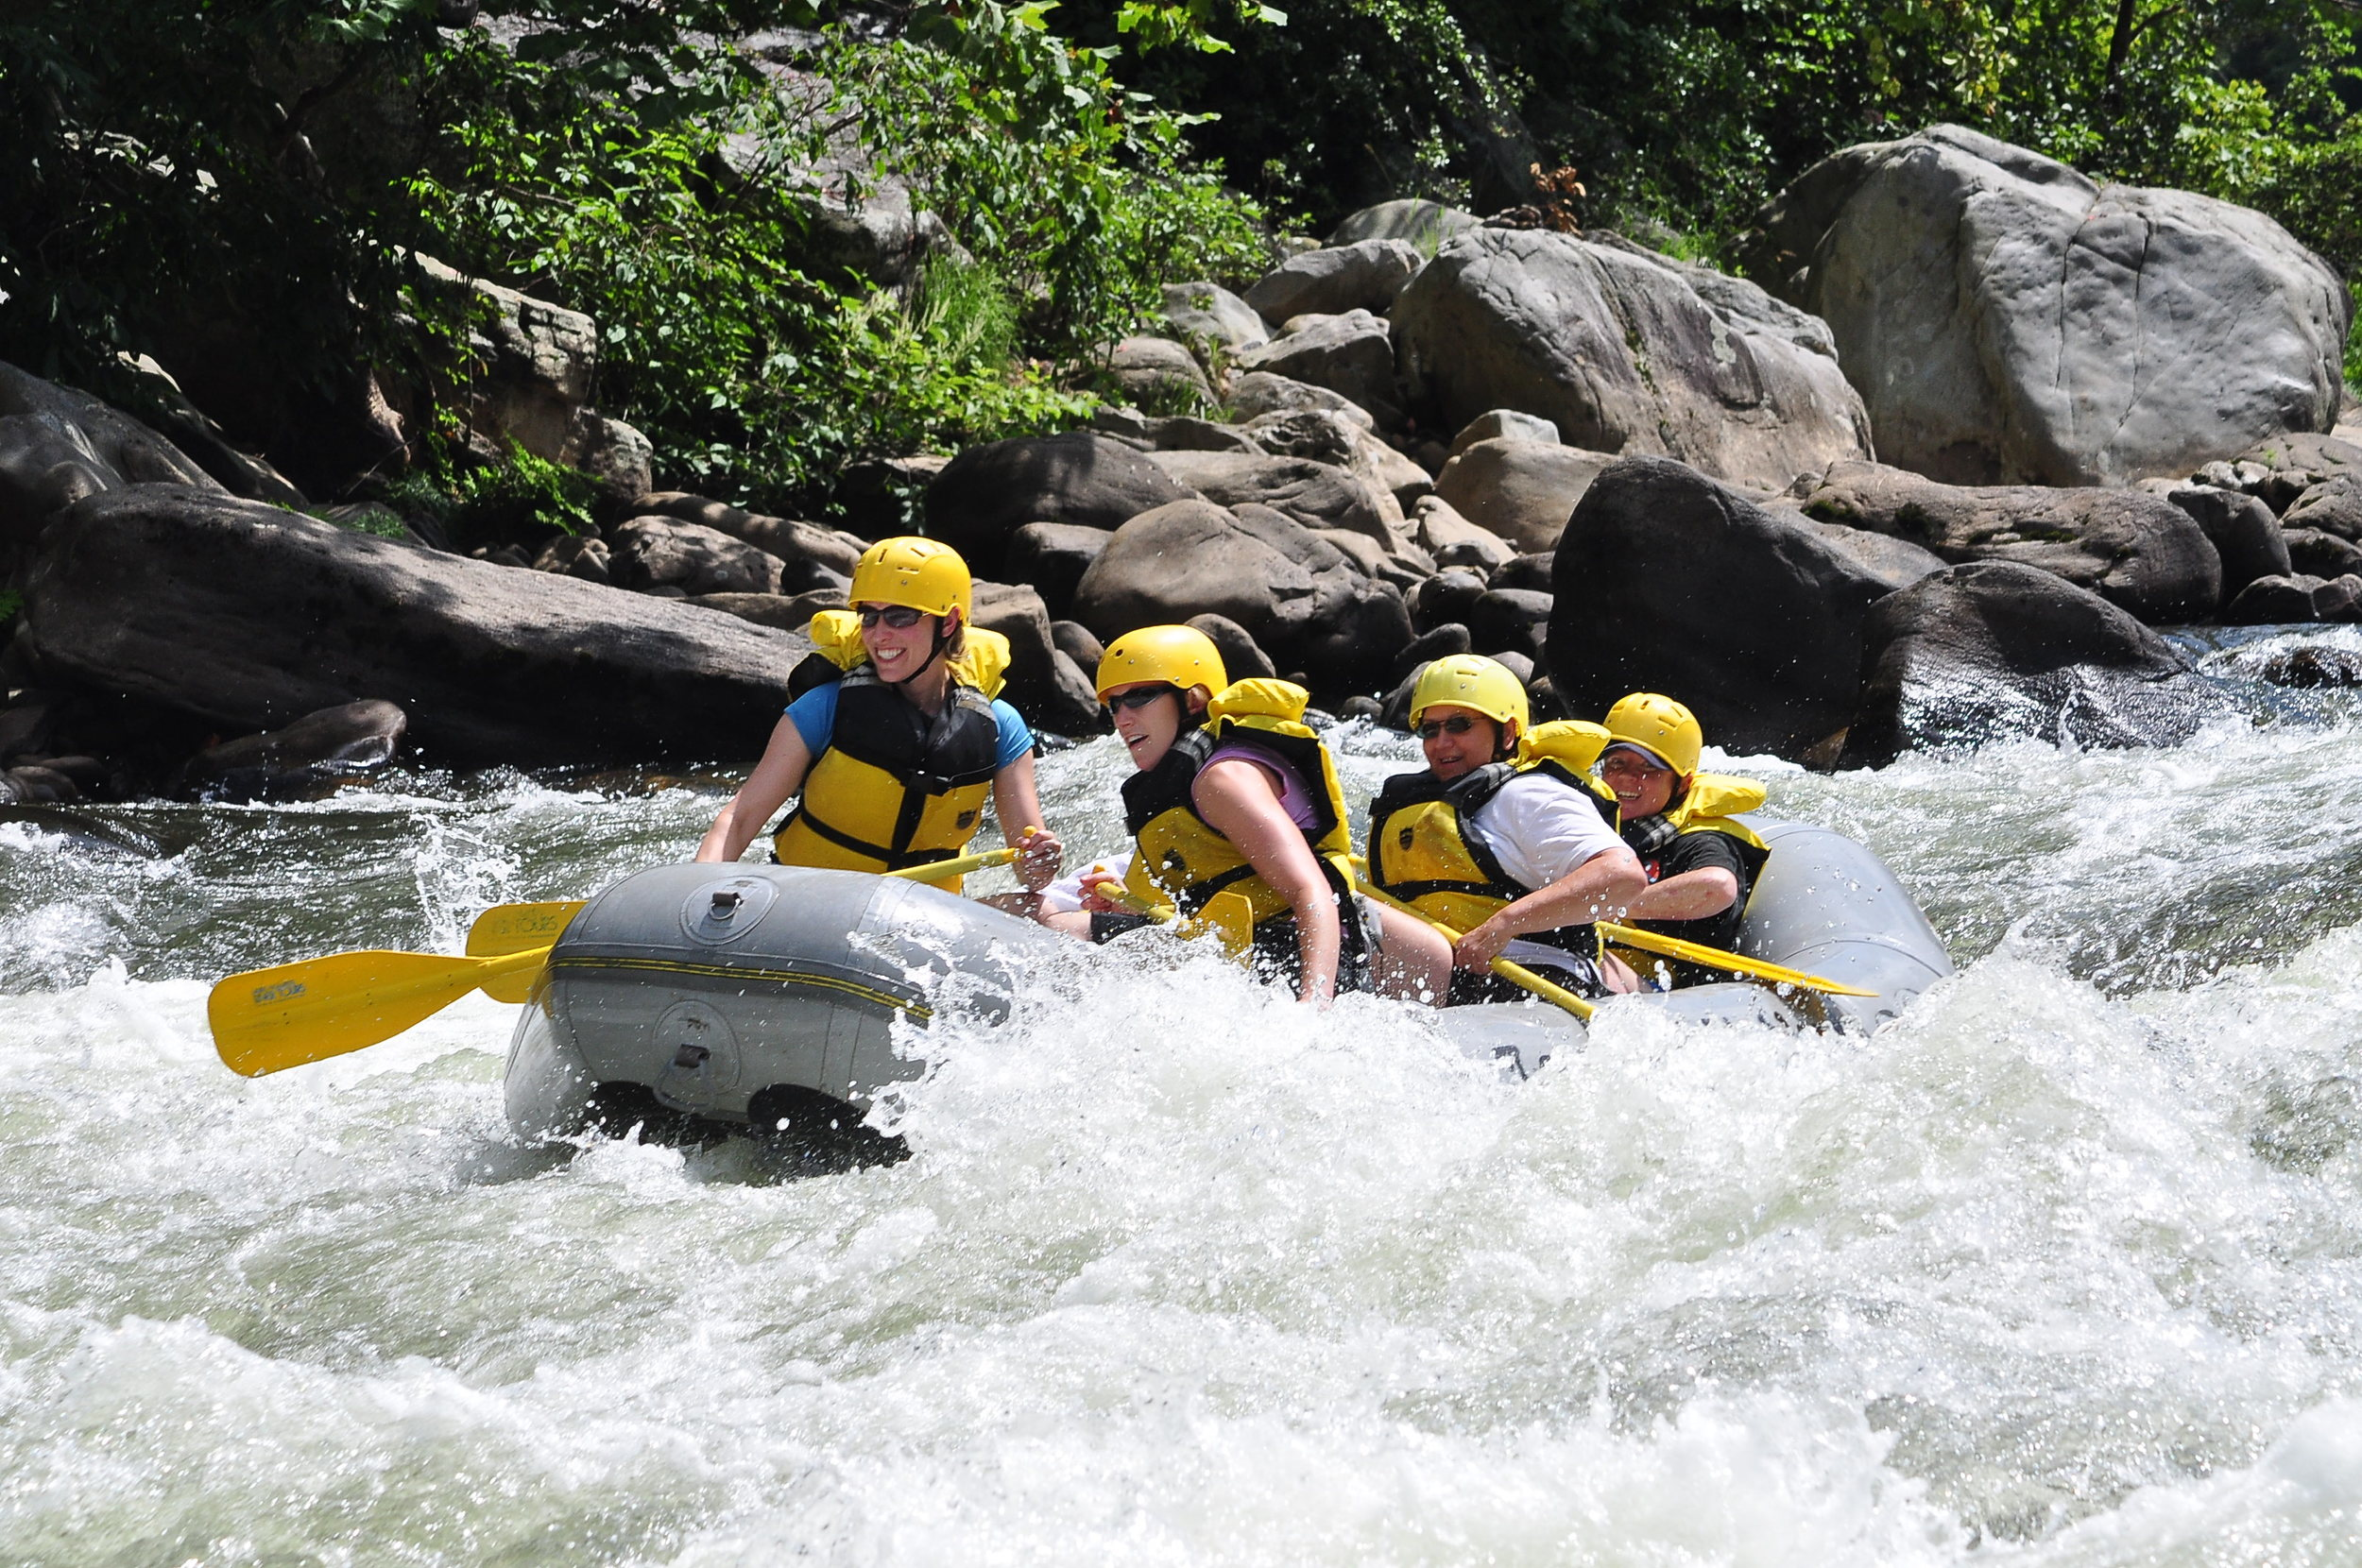 2-day Rafting Trip on the Deschutes River